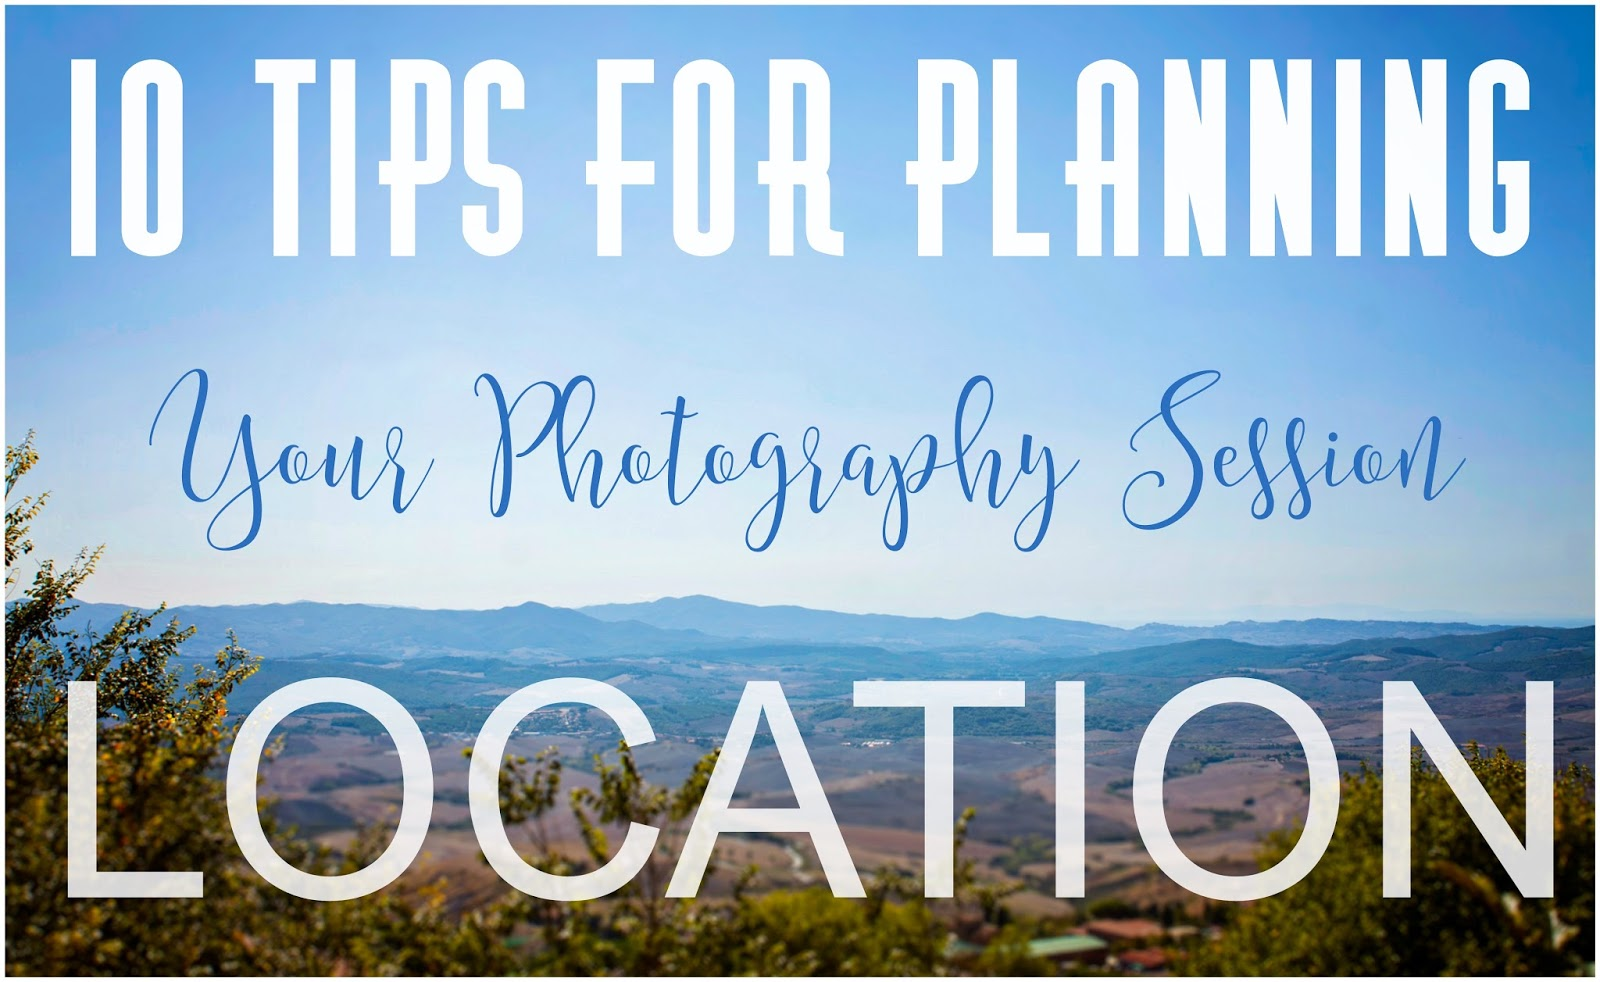 ten tips for planning your photography session location